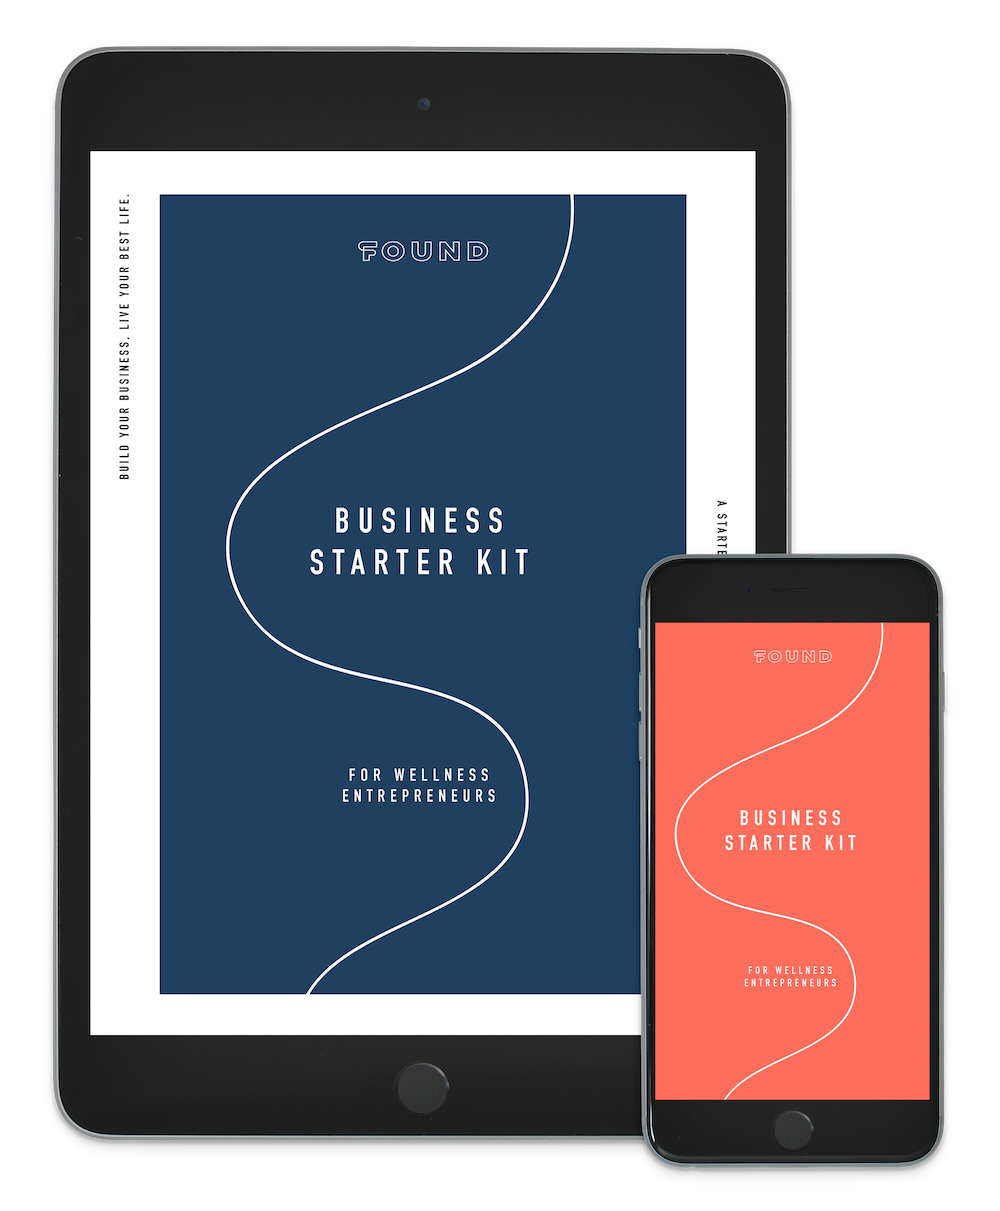 Free Business Starter Kit - So you've quit your job, you're ready to take the leap towards building your dream business, now what? Download your free business starter kit and take the next step to building your dream business and living your best life!